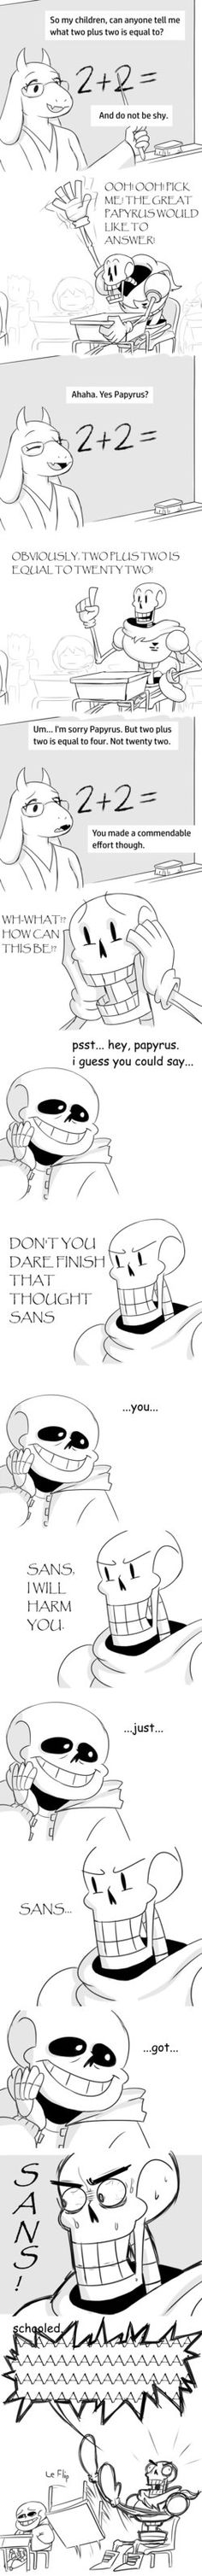 Papyrus is a cute idiot and sans is still the master of puns